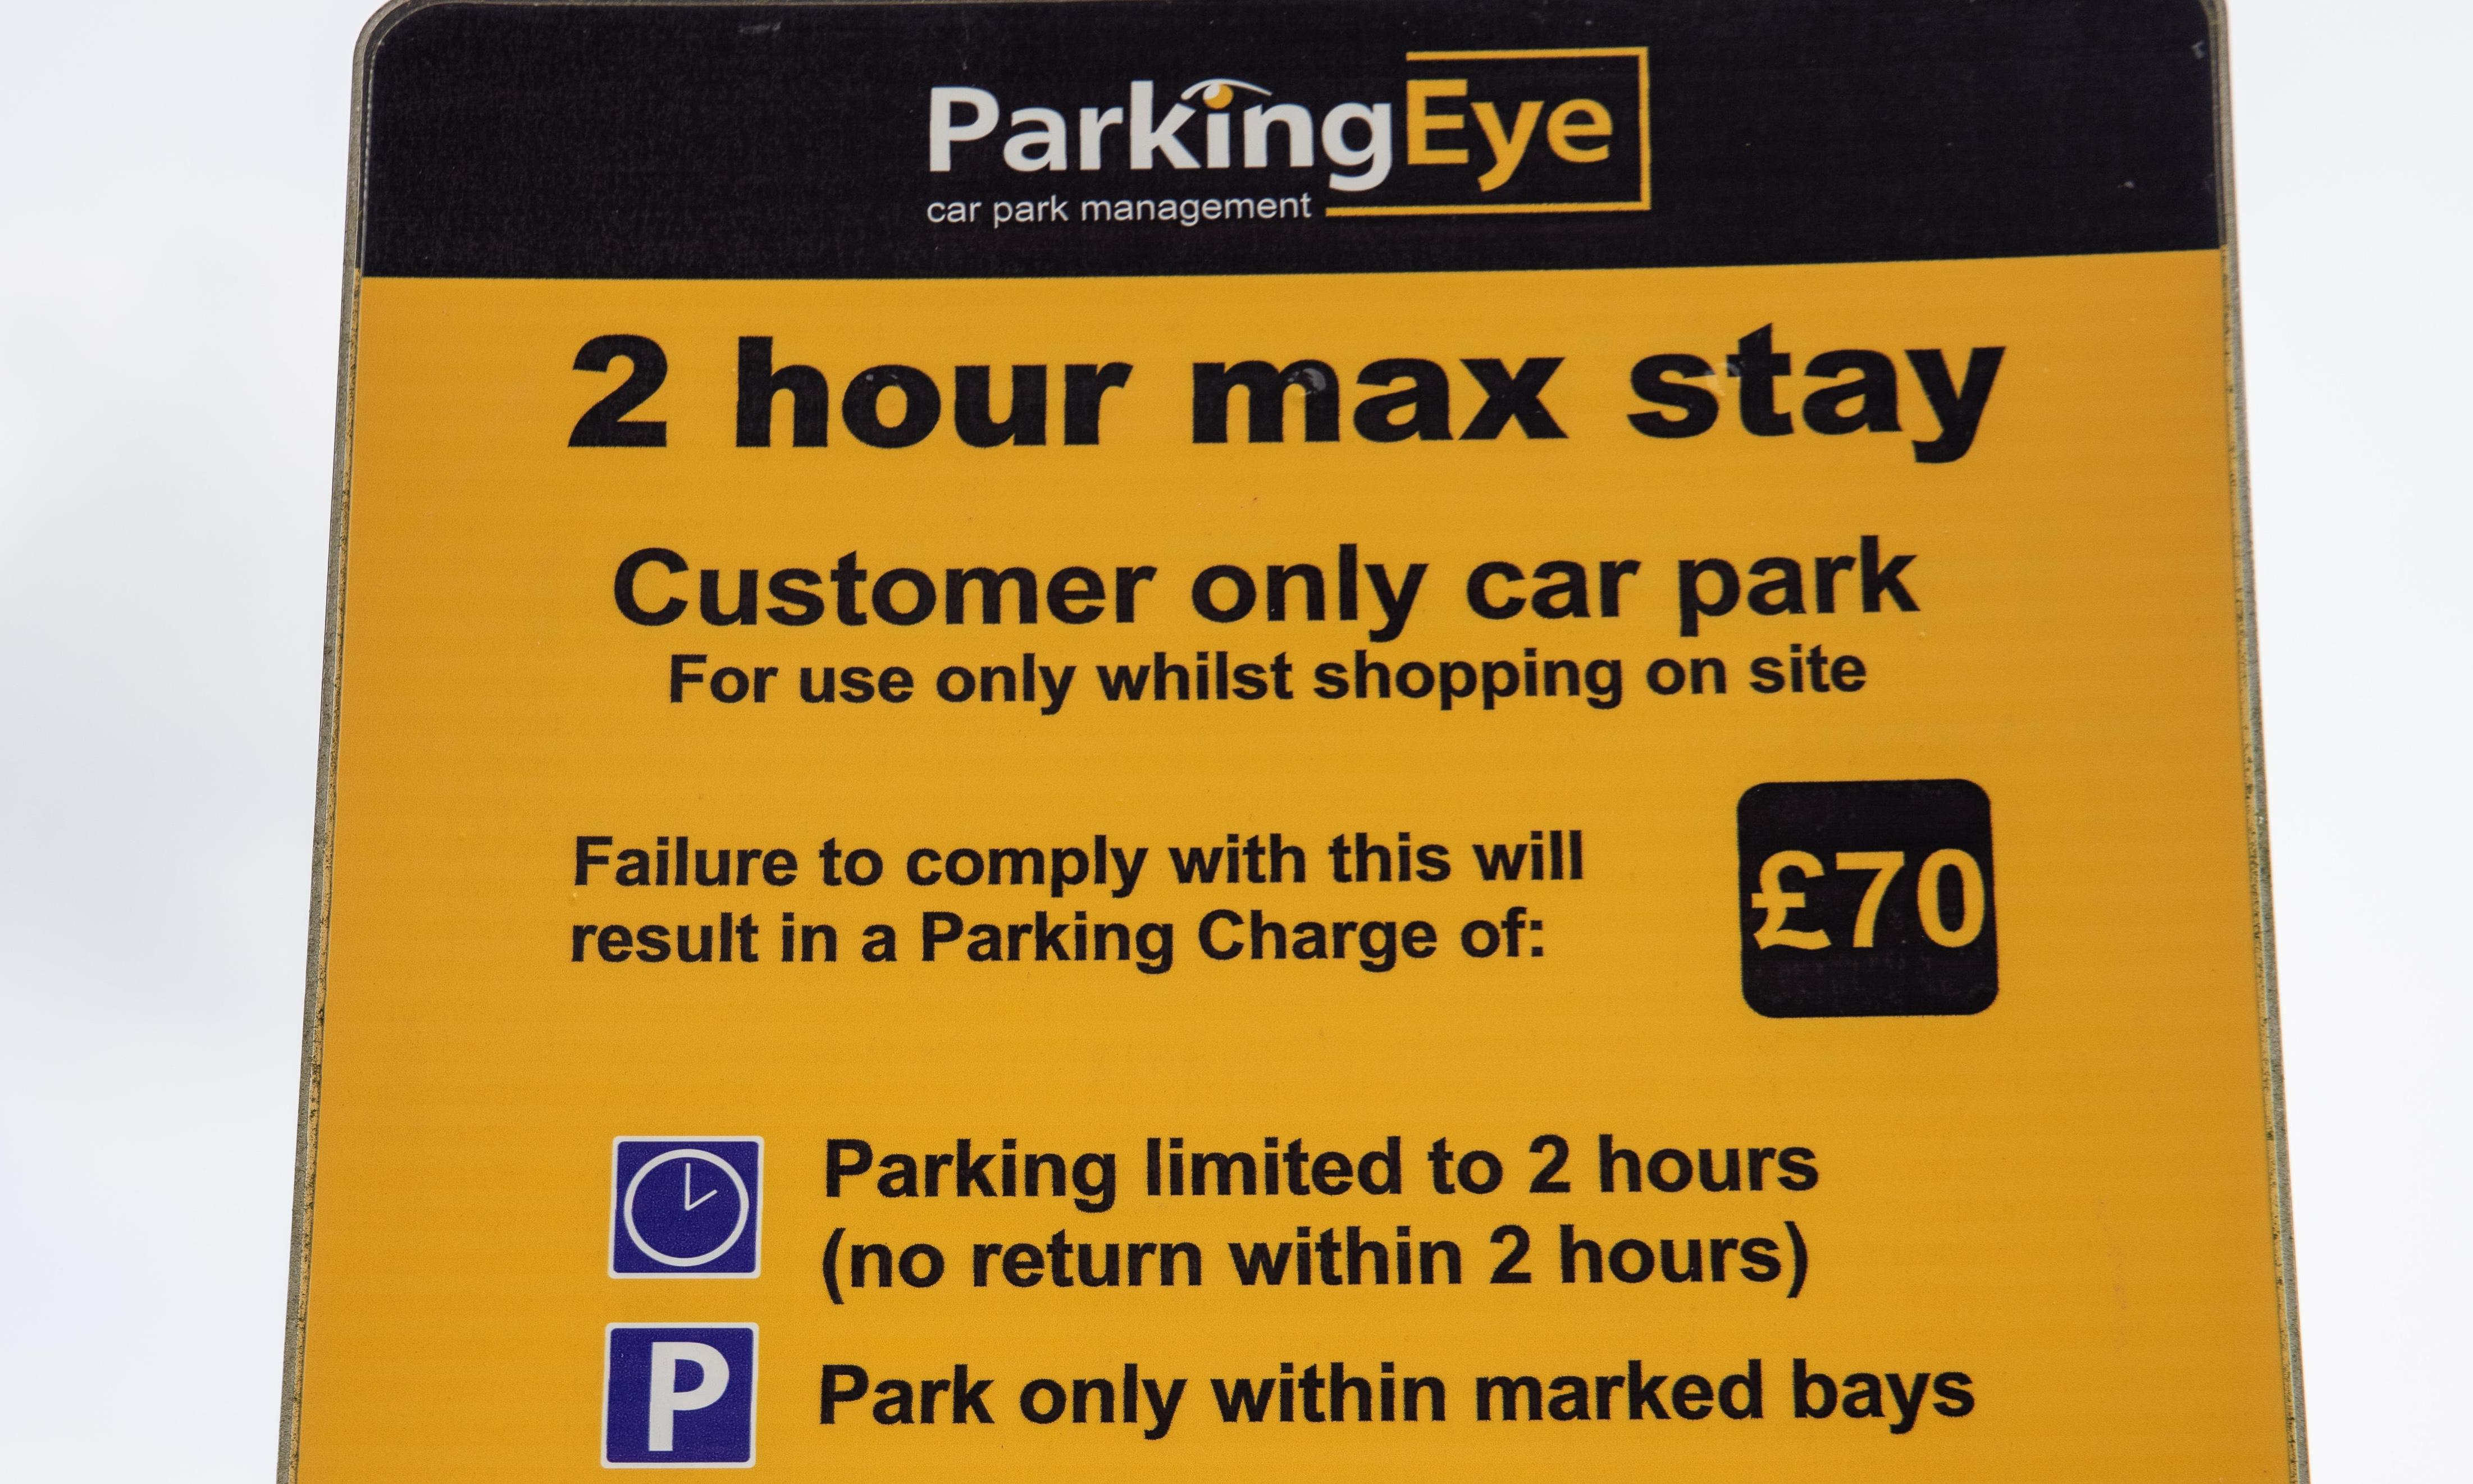 I was greeted with a £60 parking penalty at Southend airport